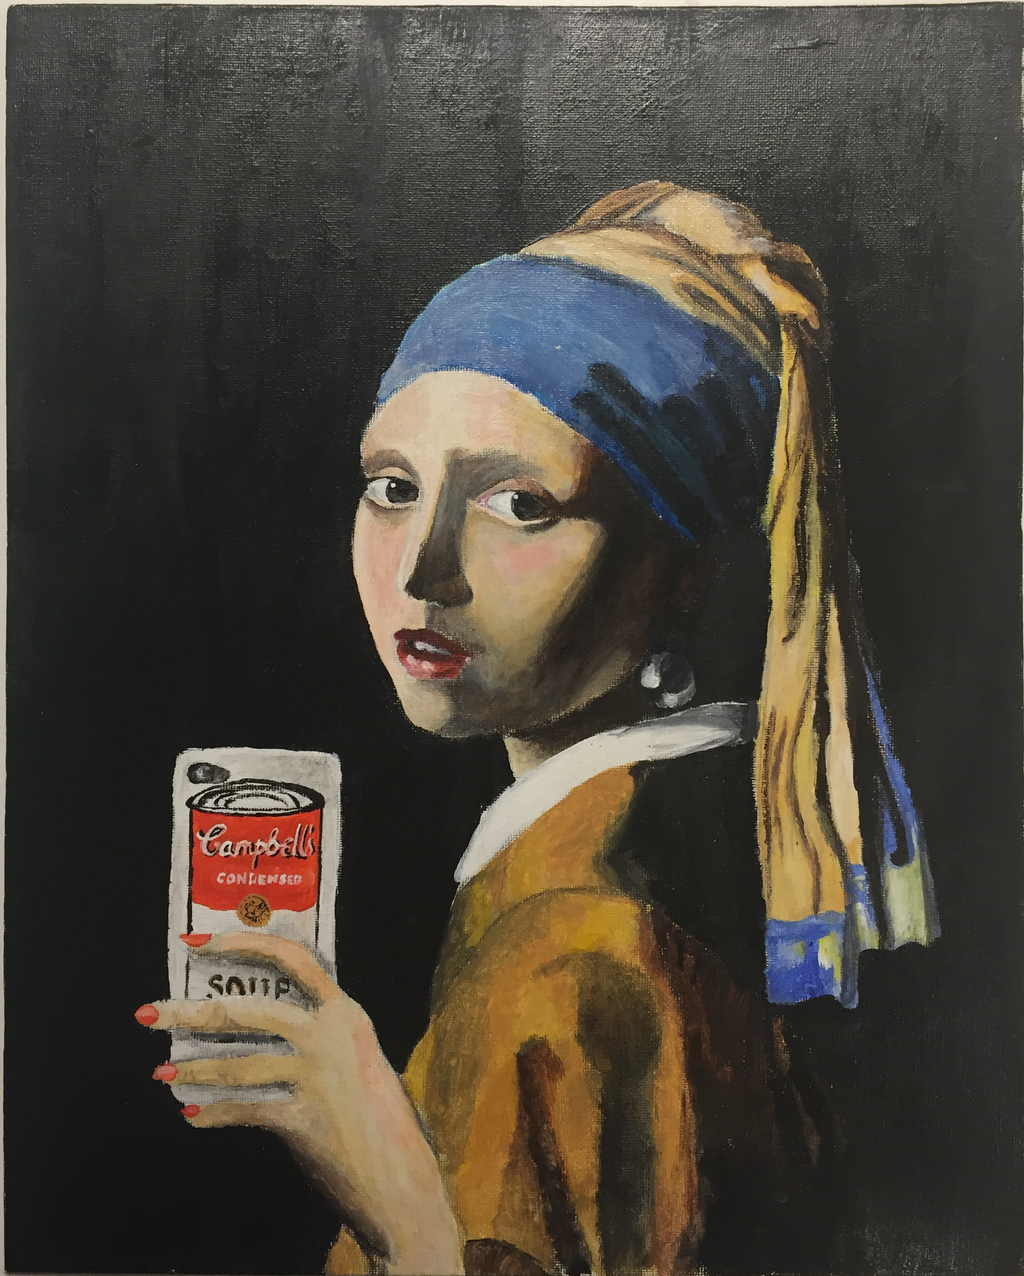 Kayleemulder 3 4 The Girl With The Pearl Earring Taking A Selfie By  Almostastrid